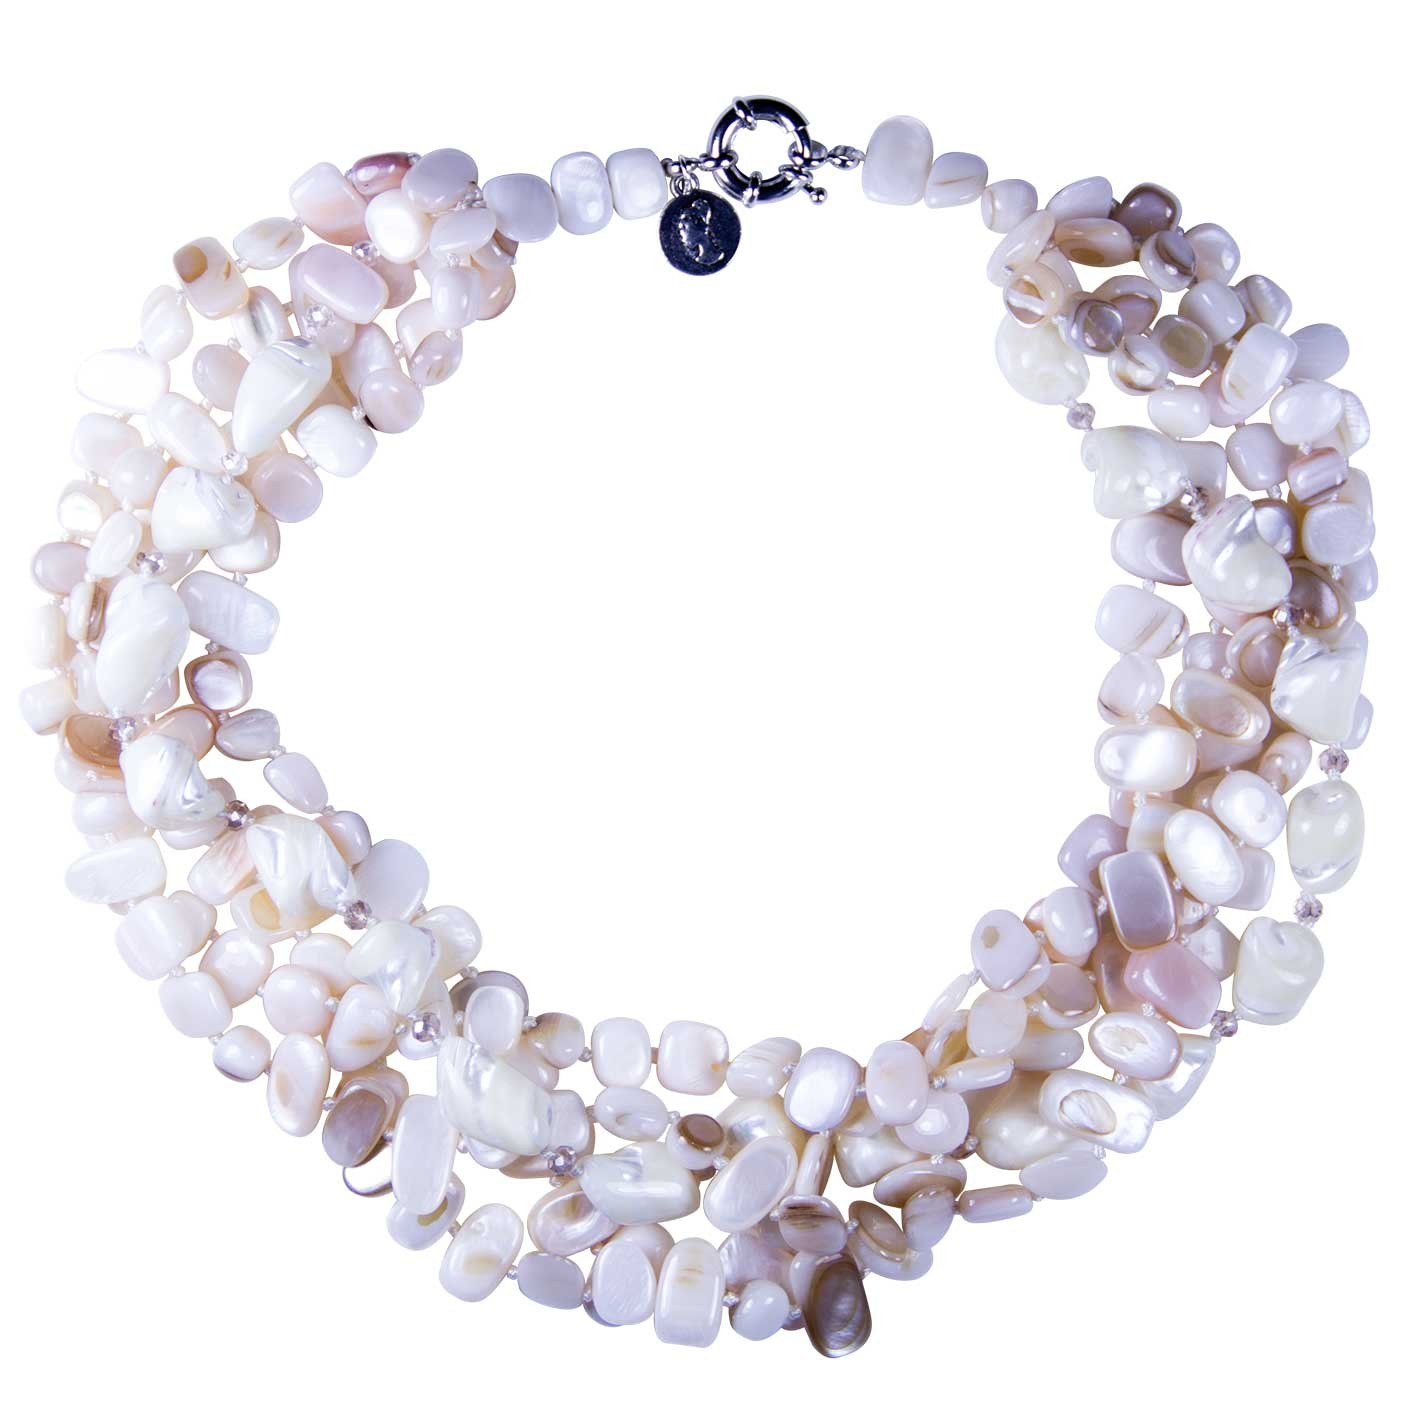 precious bc made beads n shells swarovski in necklace of semi cream strands shell crystal stones bcharmd white england crystals